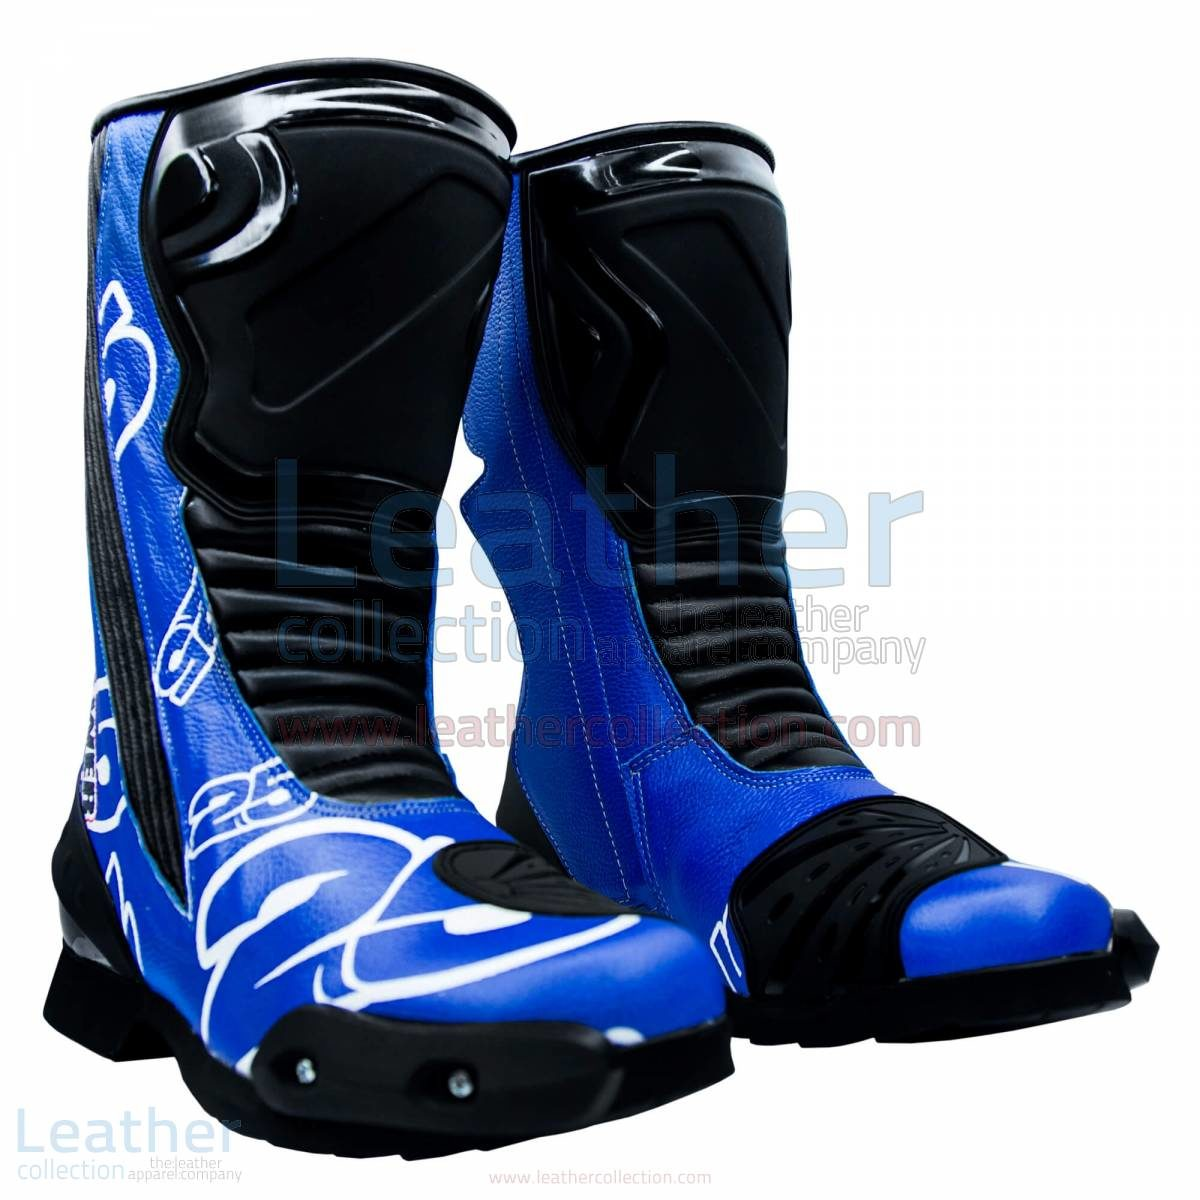 Maverick Vinales MotoGP 2015 Leather Boots